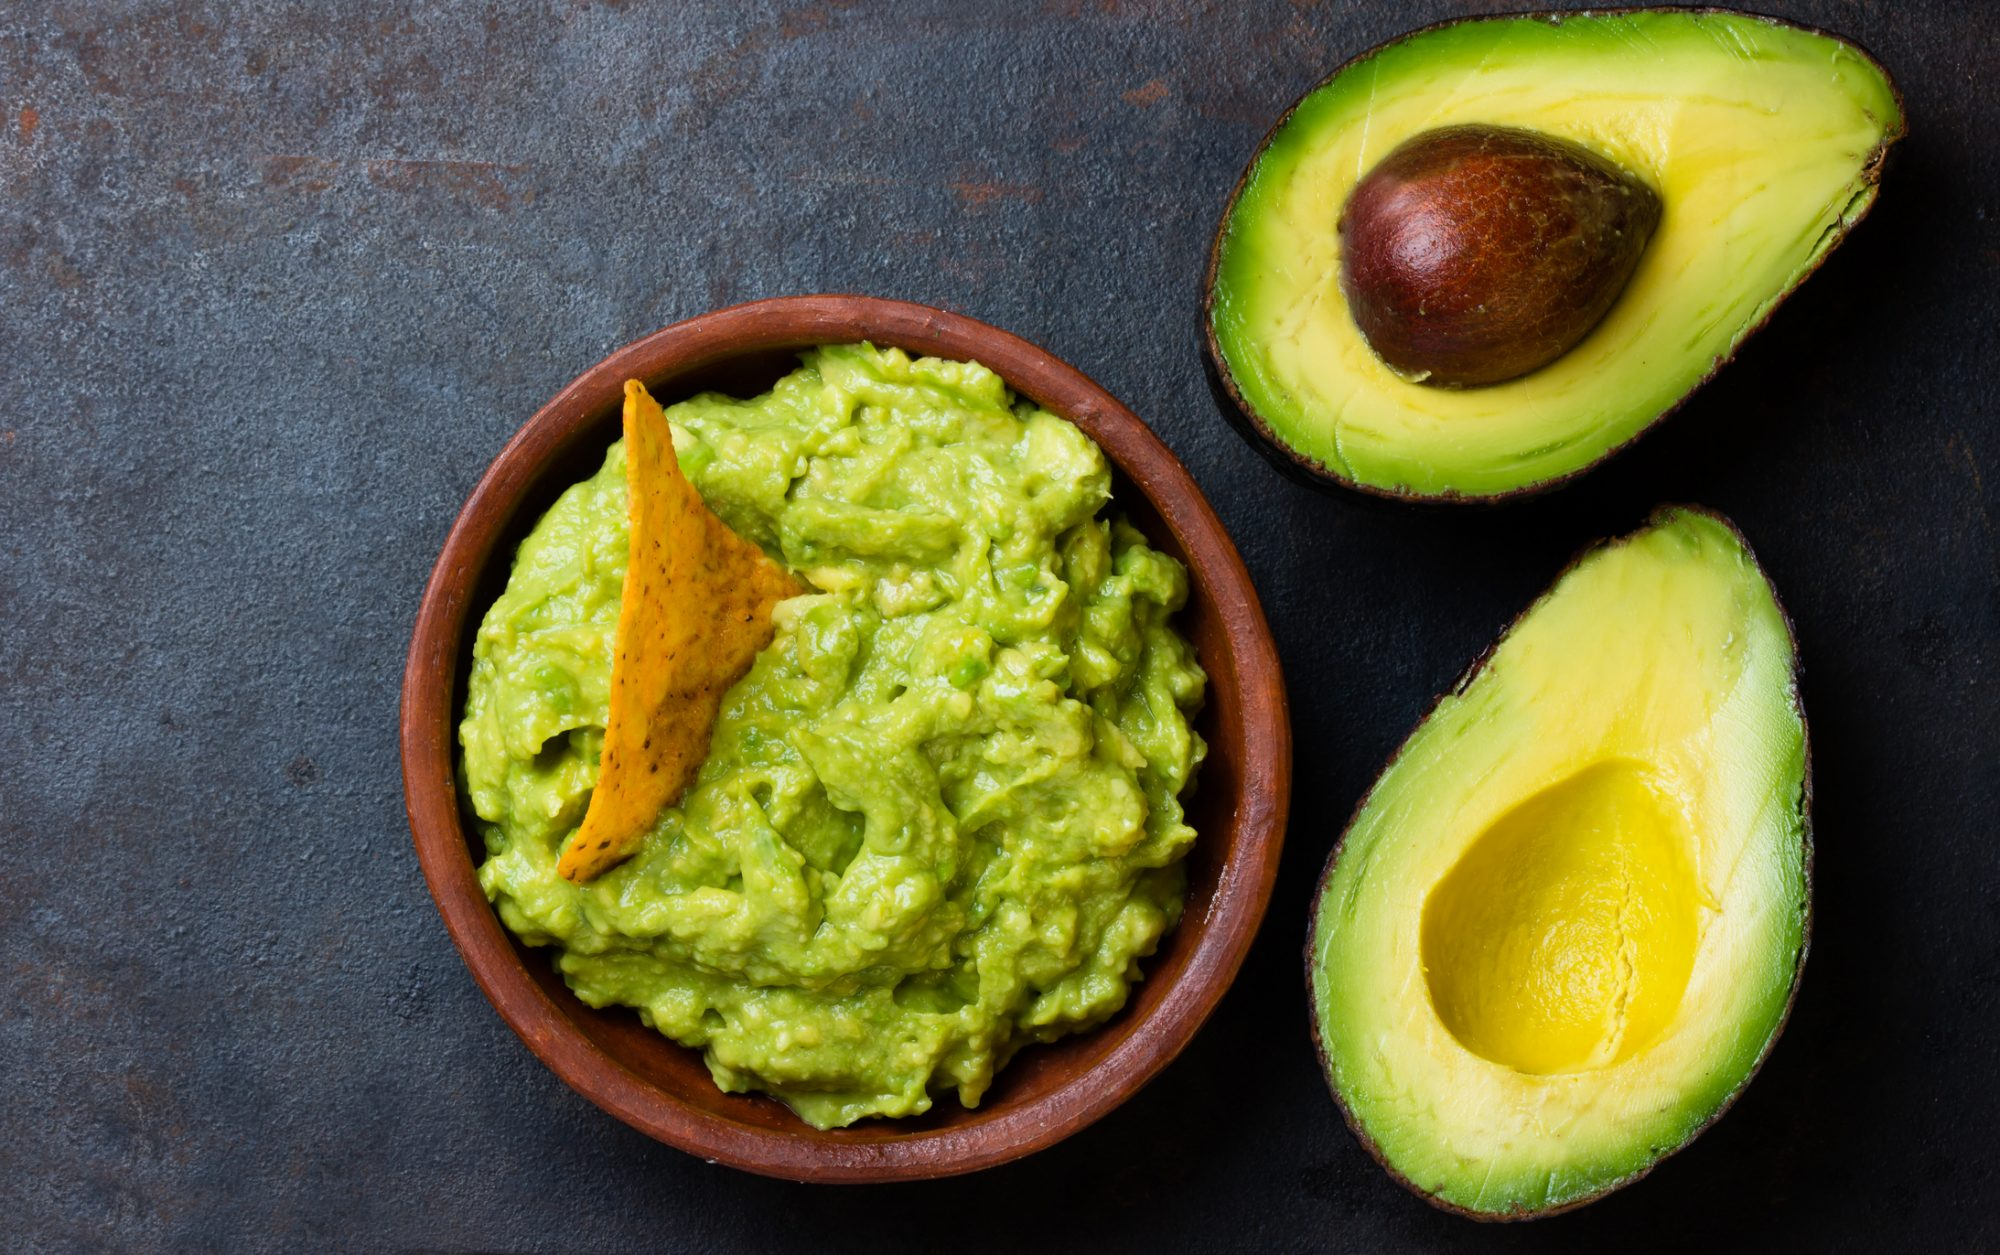 We Tried 7 Guacamole Brands and This Was Our Favorite